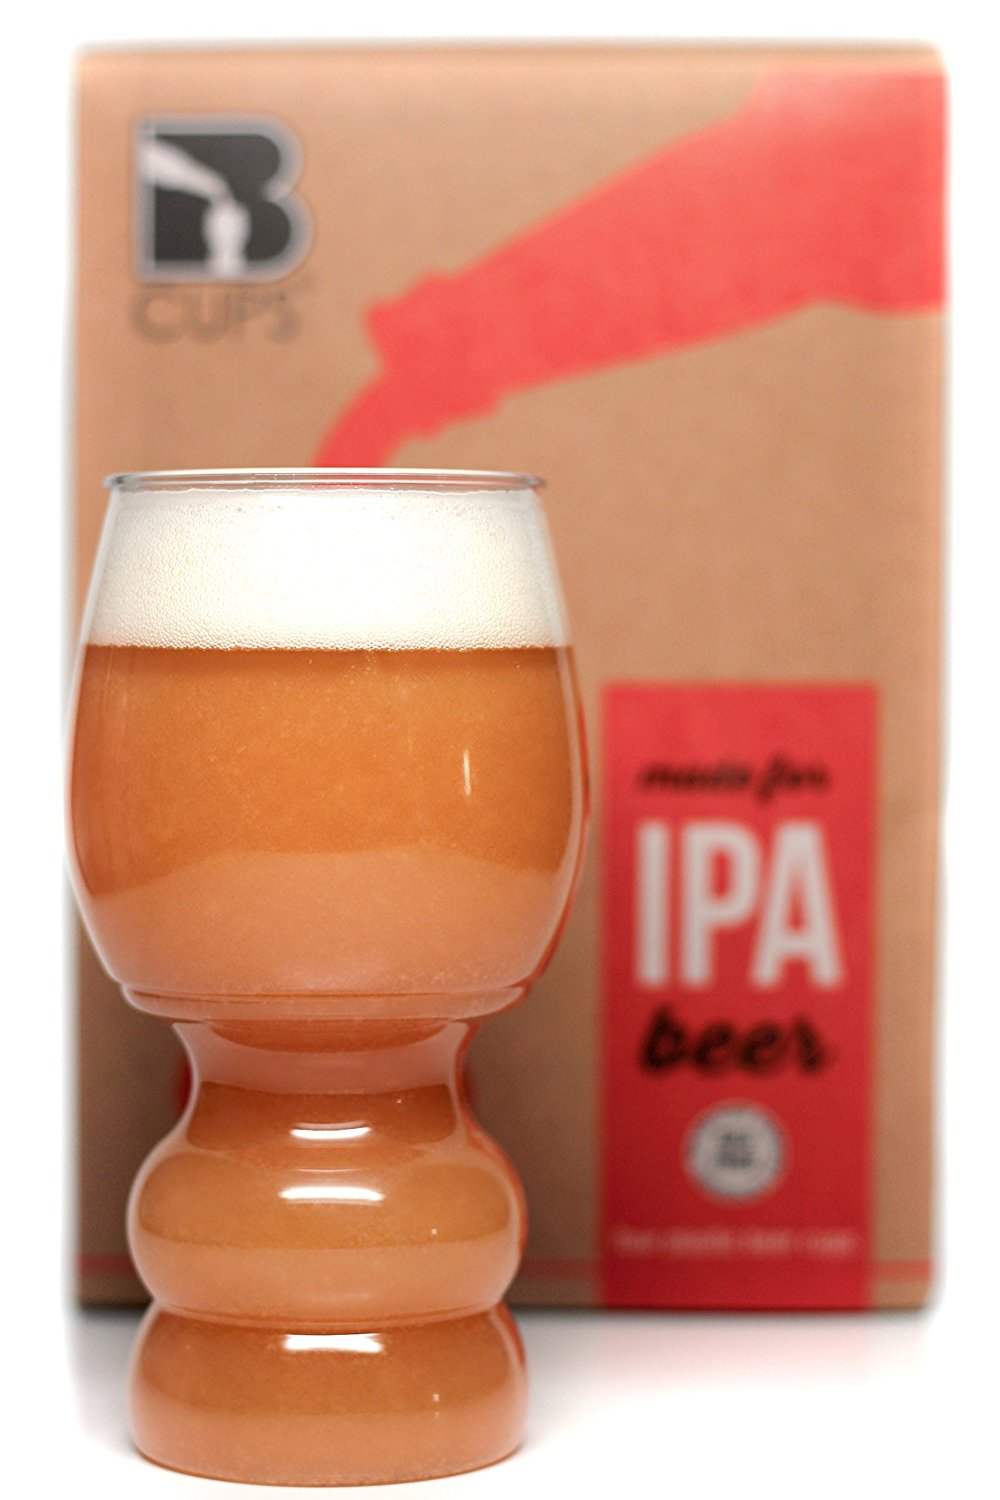 B Cups 17oz Plastic IPA Craft Beer Glass SET OF 4 - BPA Free Outdoor Dishwasher Safe Craft Beer Cups